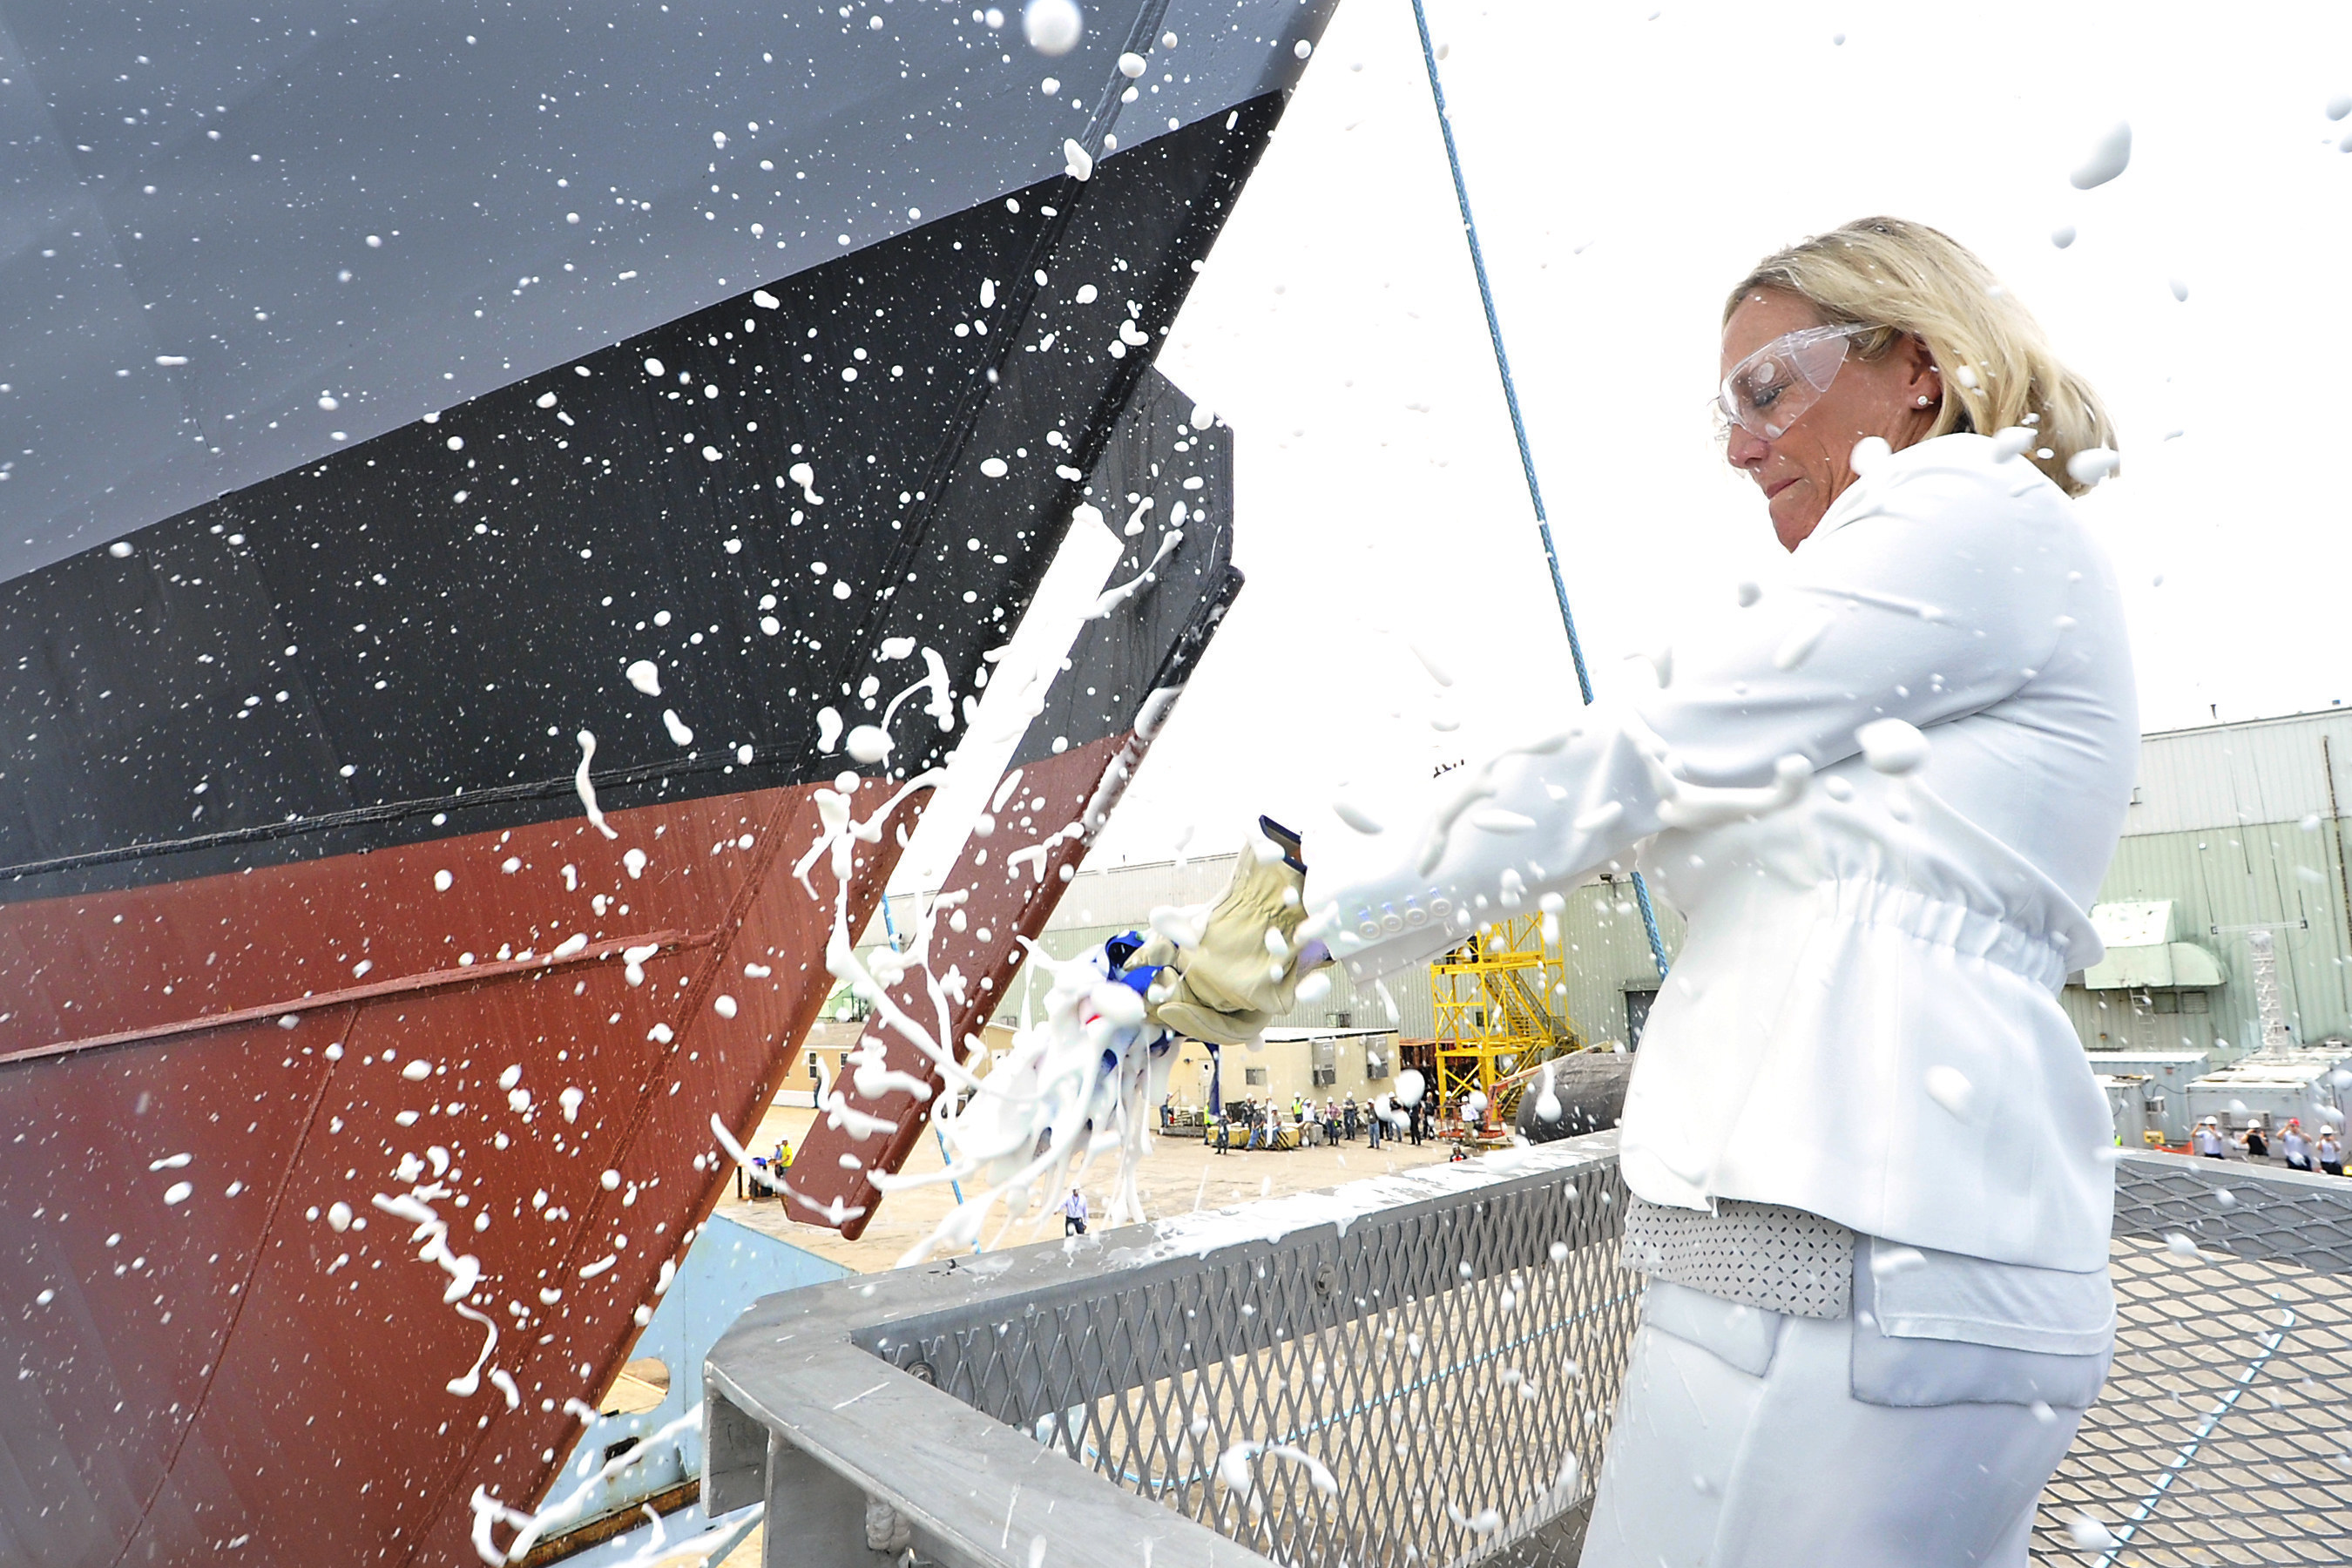 The ninth littoral combat ship, the future USS Little Rock, launched sideways into the Menominee River in Marinette, Wisconsin, on July 18. Ship sponsor Mrs. Janee Bonner conducted the time-honored tradition of christening the ship by smashing a bottle of champagne across the bow.